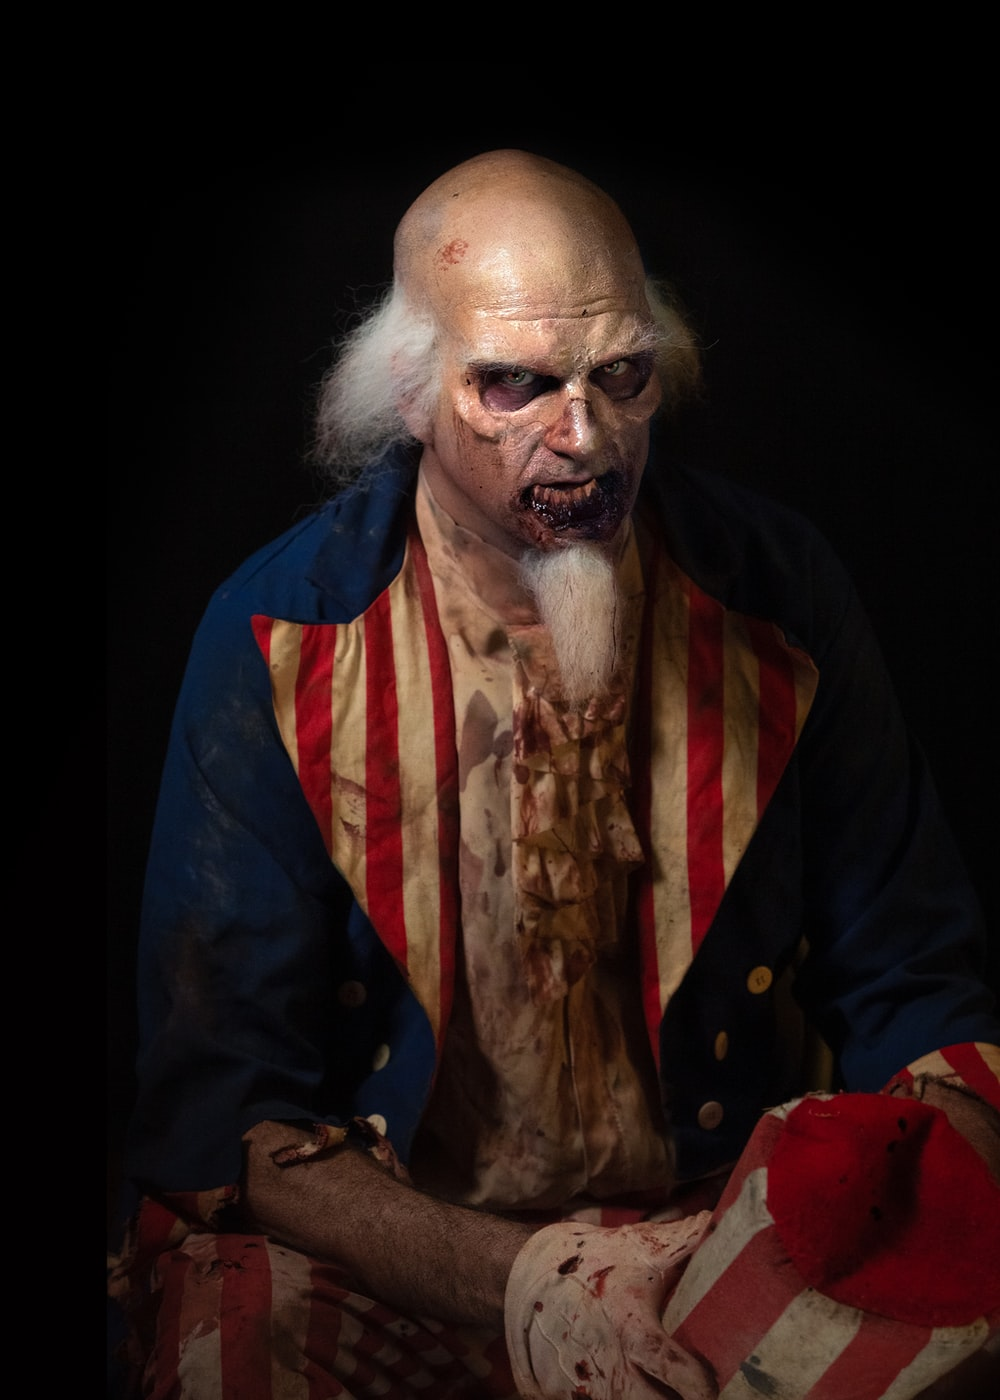 man in red, blue, and white coat horror character